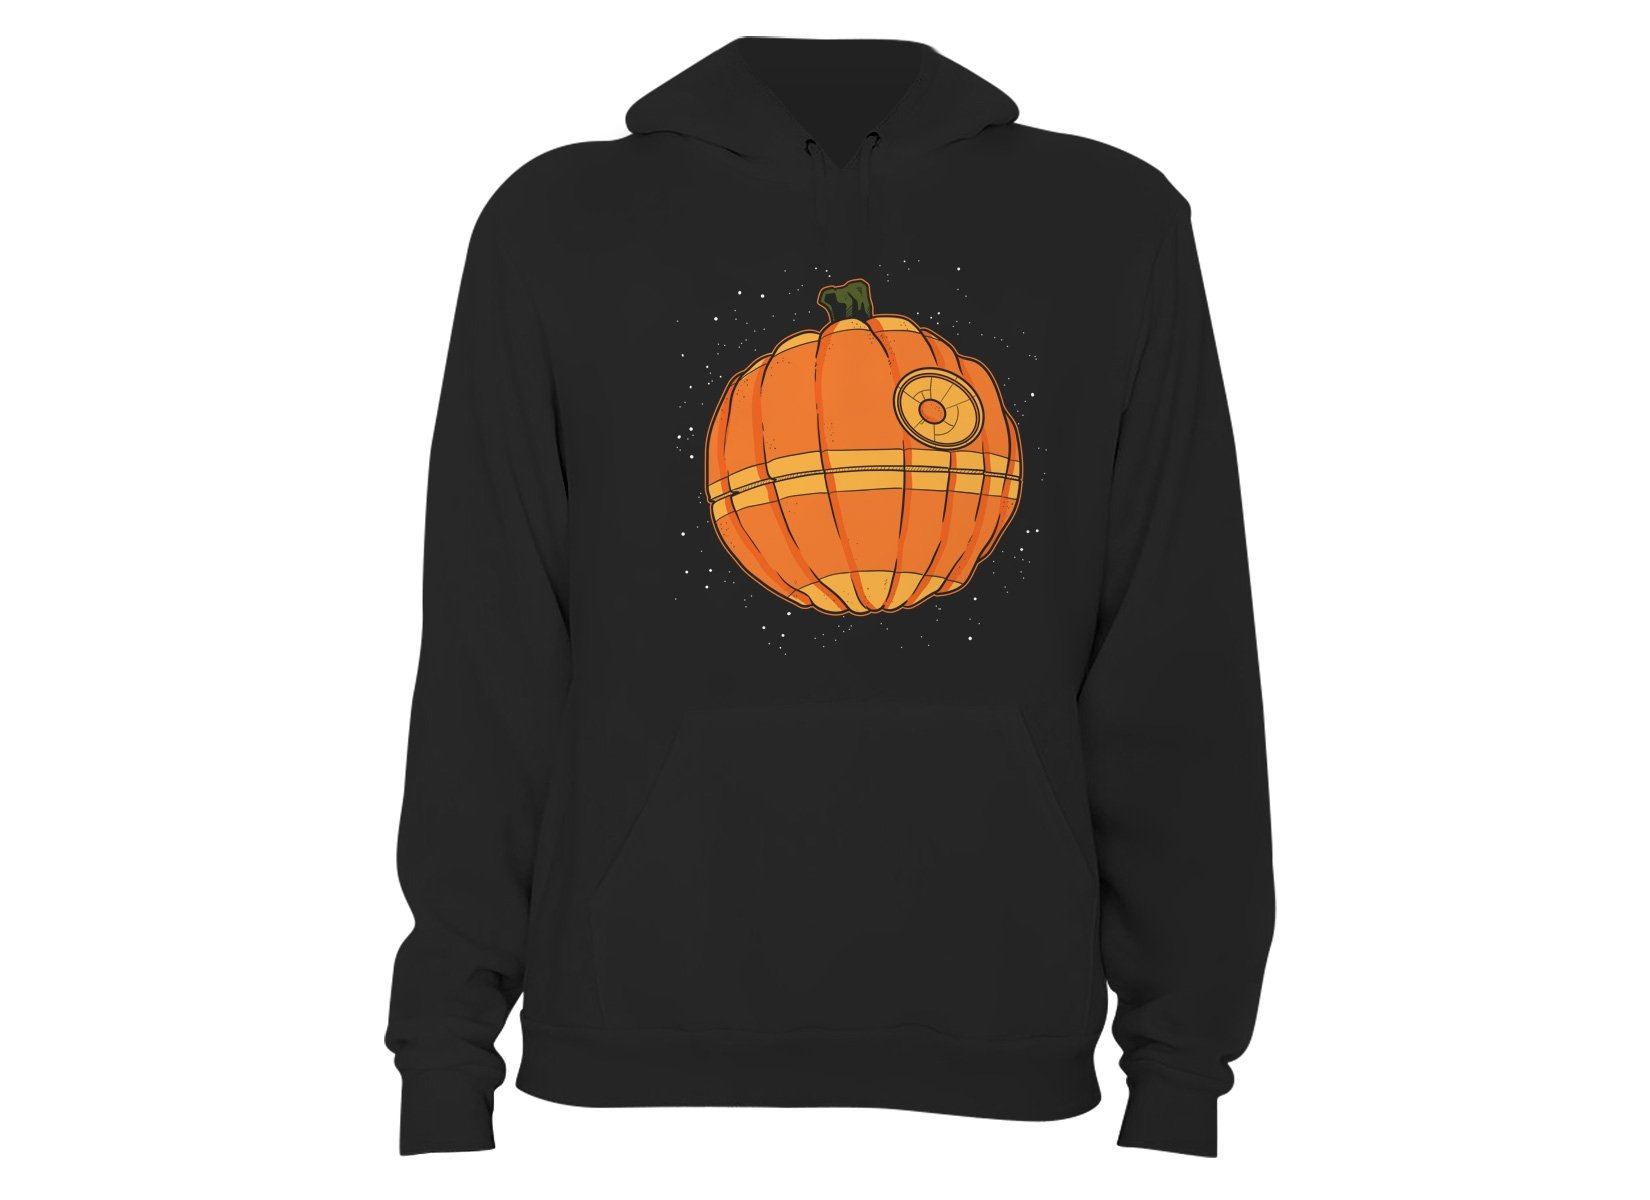 That's No Pumpkin on Hoodie